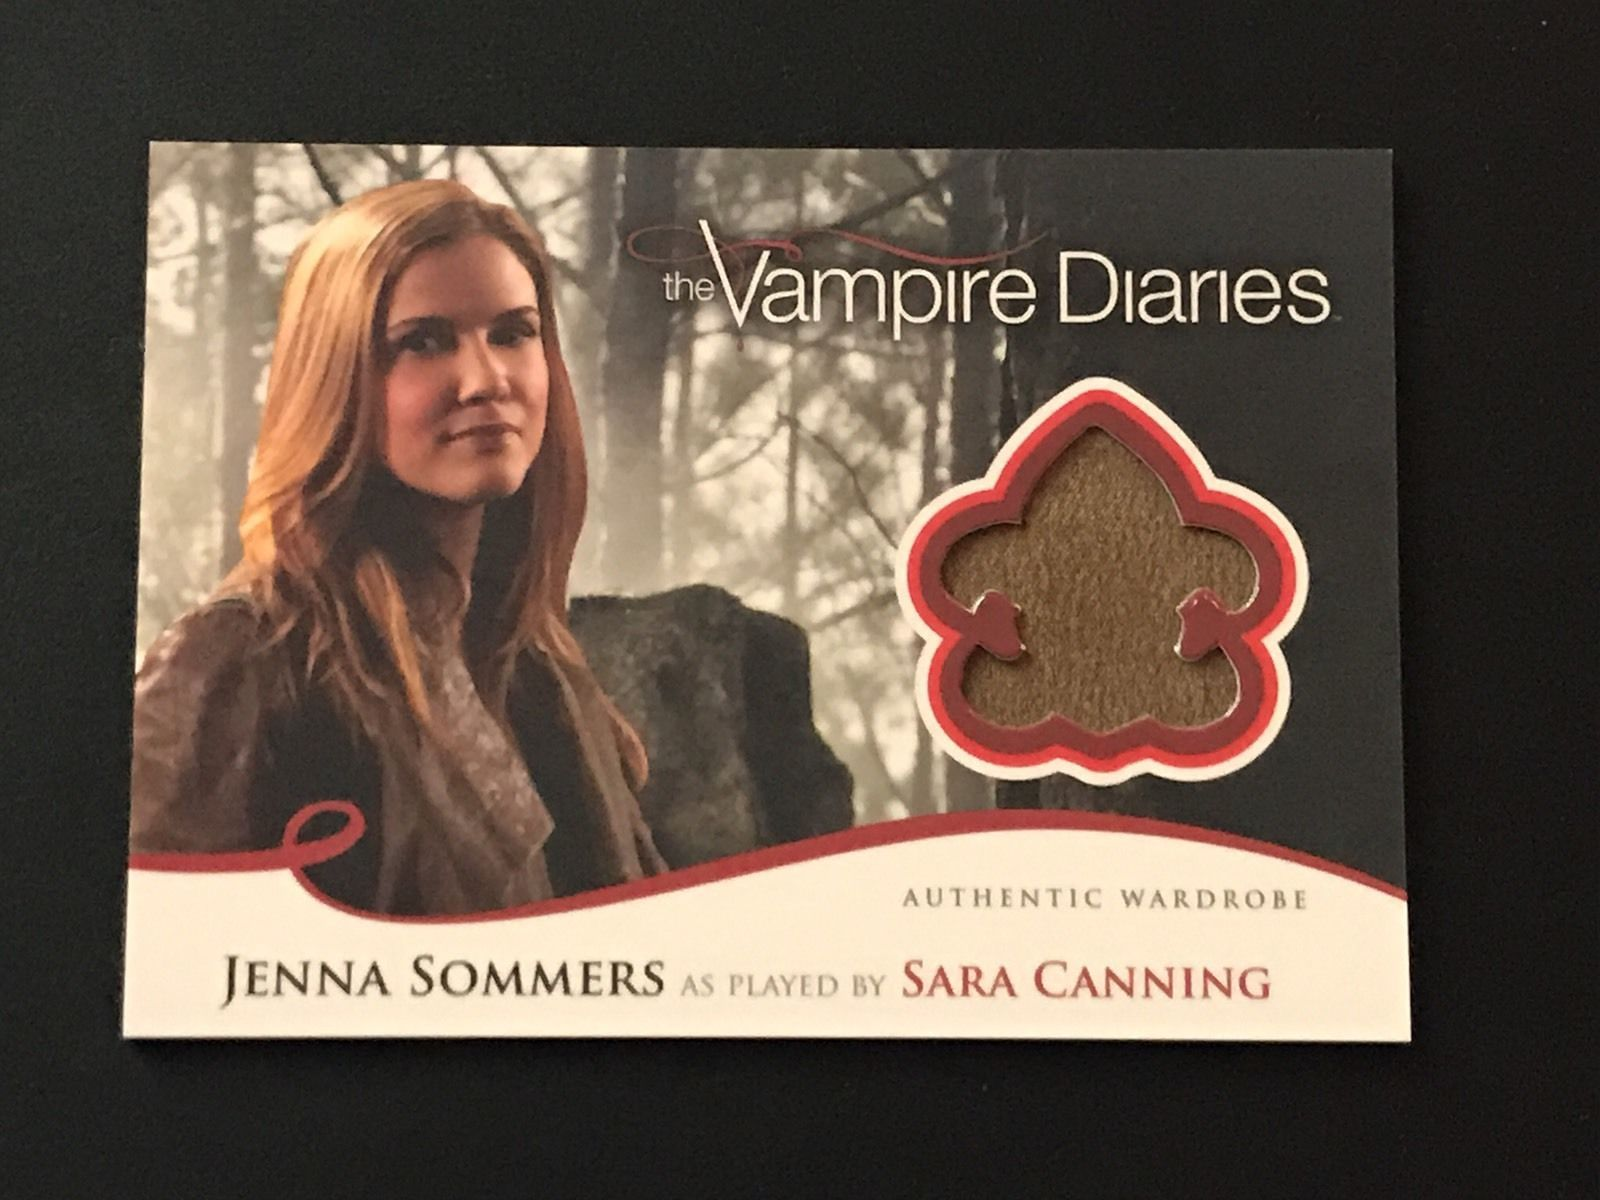 Primary image for Vampire Diaries Season 2 Costume/Wardrobe M14 Sara Canning as Jenna Sommers